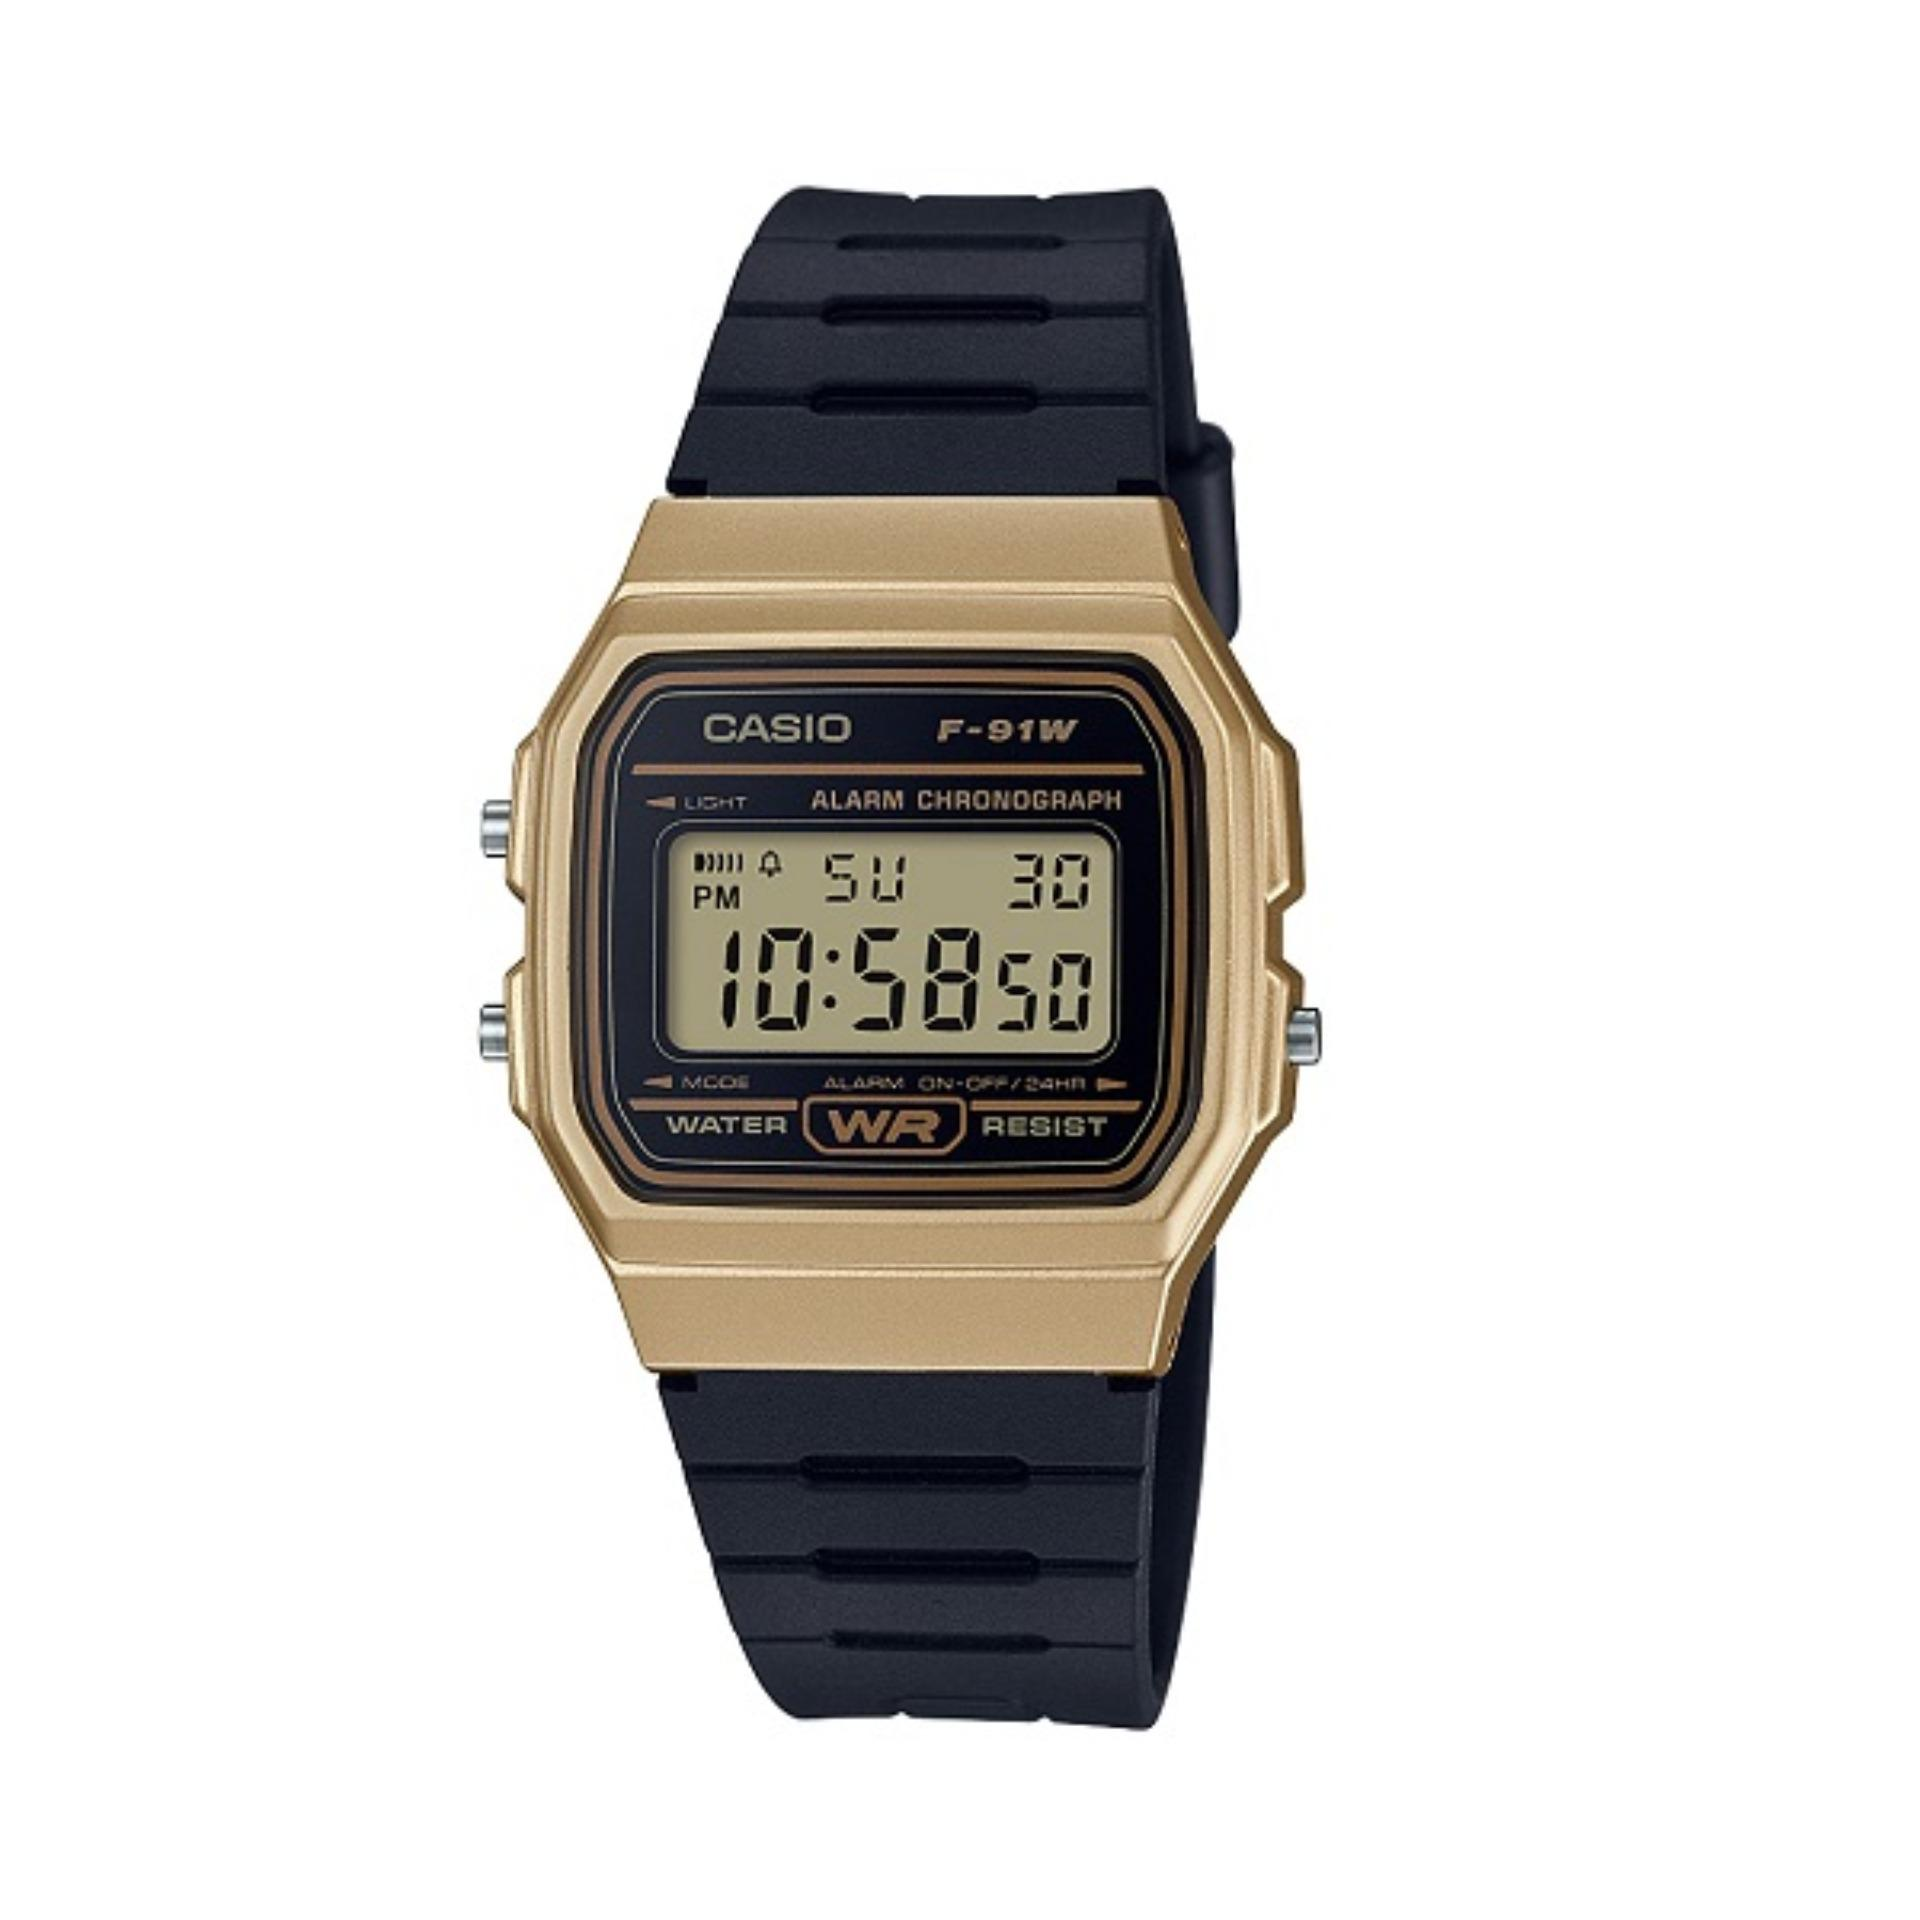 a105841bbb4 Watches for sale - Wristwatches online brands